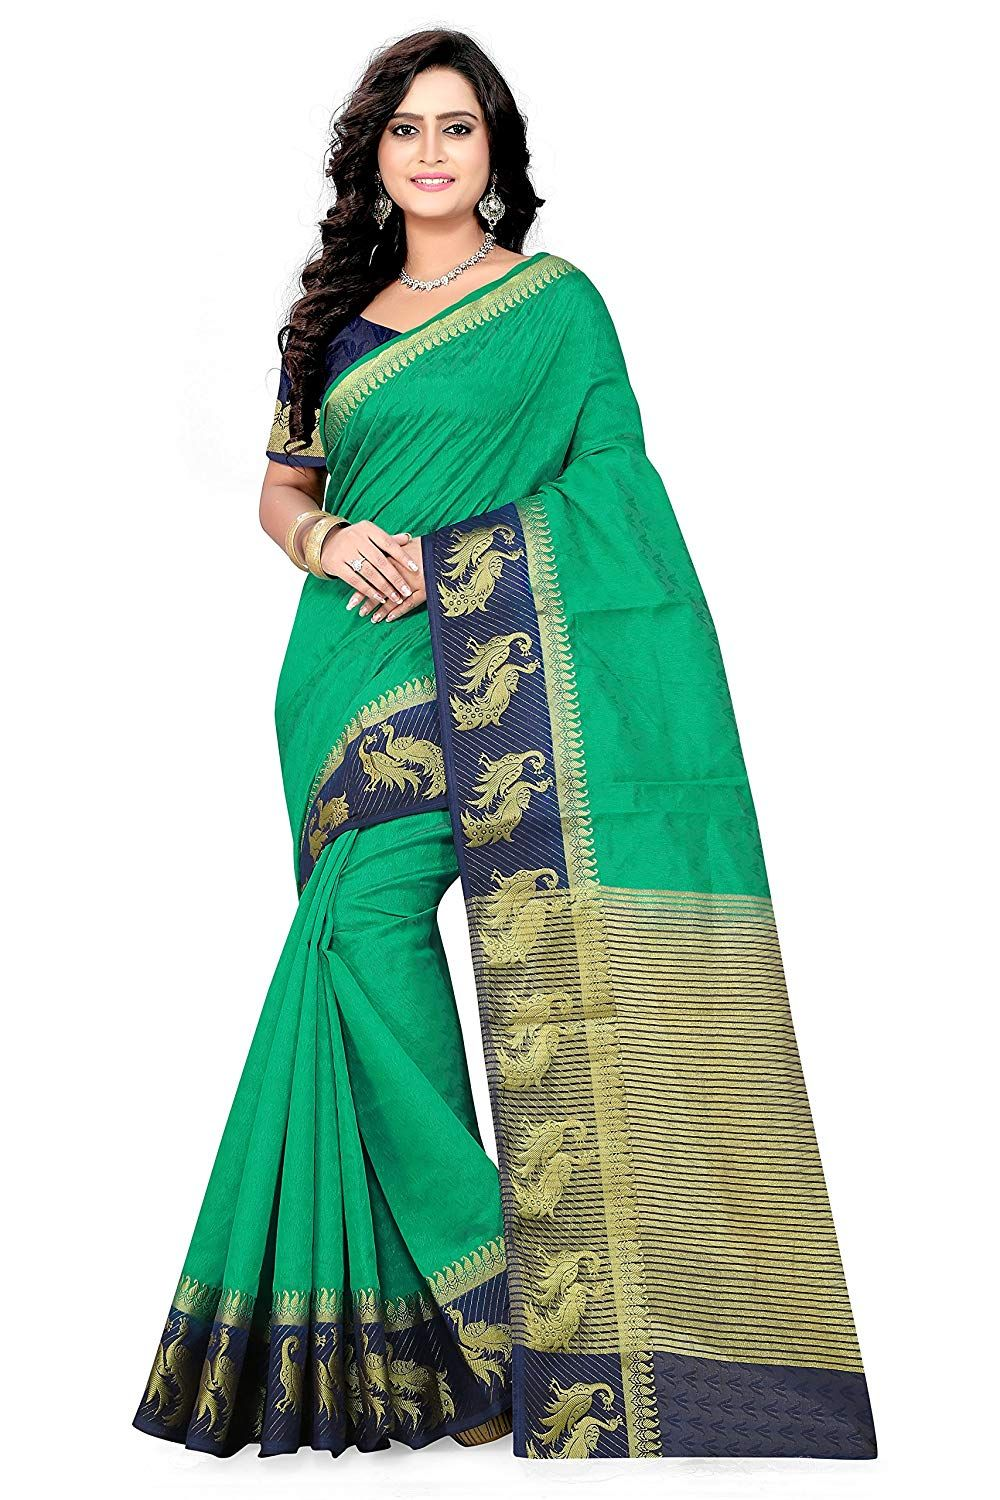 cb52c5bbd715ba Designer Saree With Blouse Piece | Only on trendyecomshop.shopwithme.in |  Best Saree